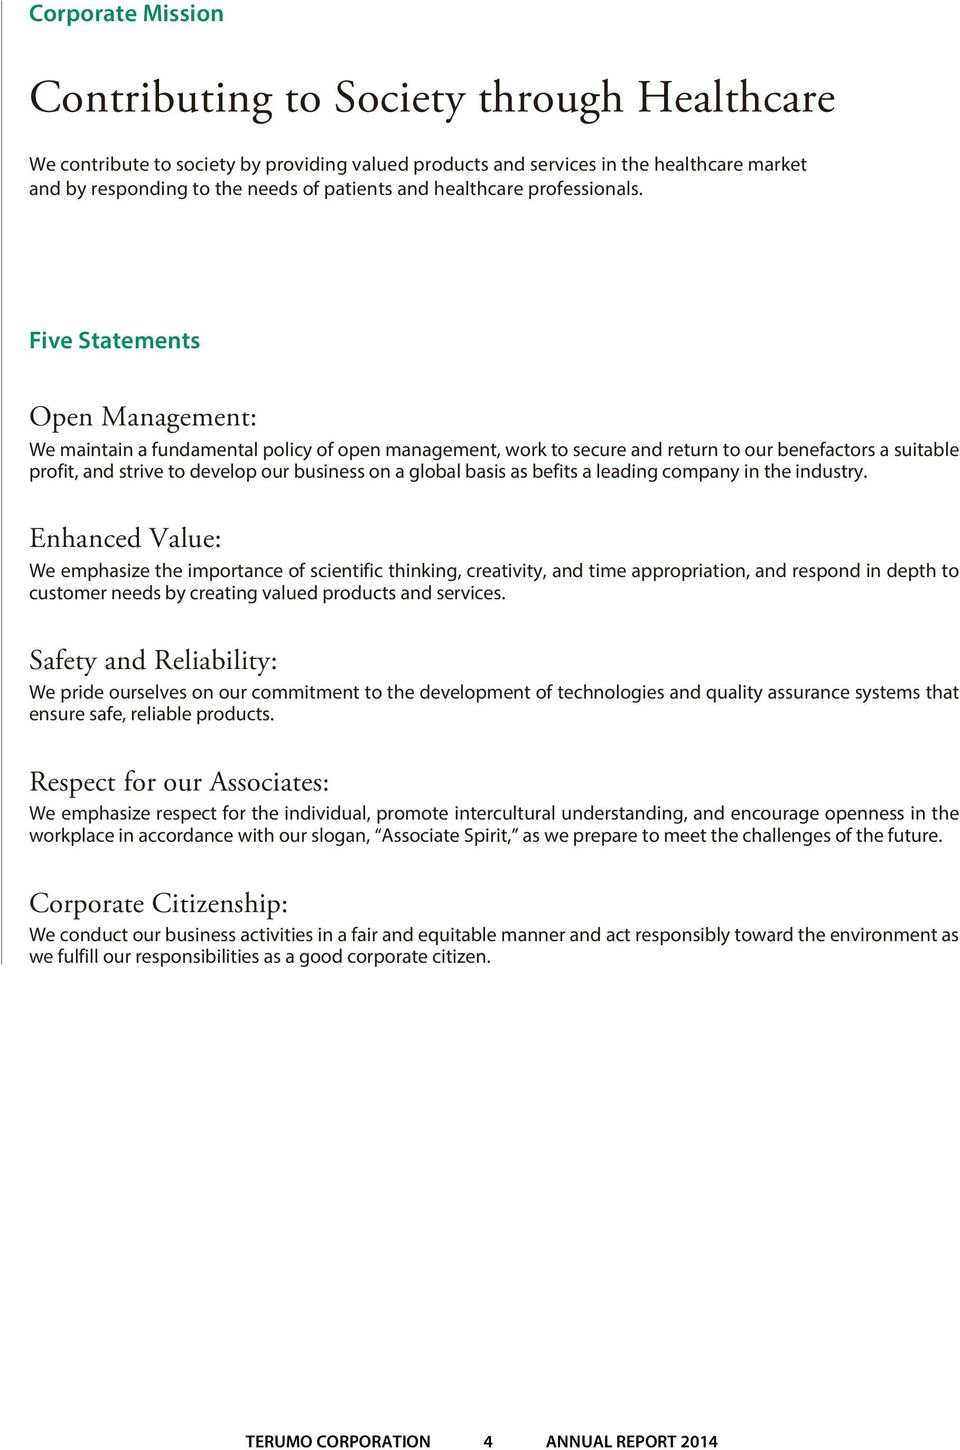 Five Statements Open Management: We maintain a fundamental policy of open management, work to secure and return to our benefactors a suitable profit, and strive to develop our business on a global